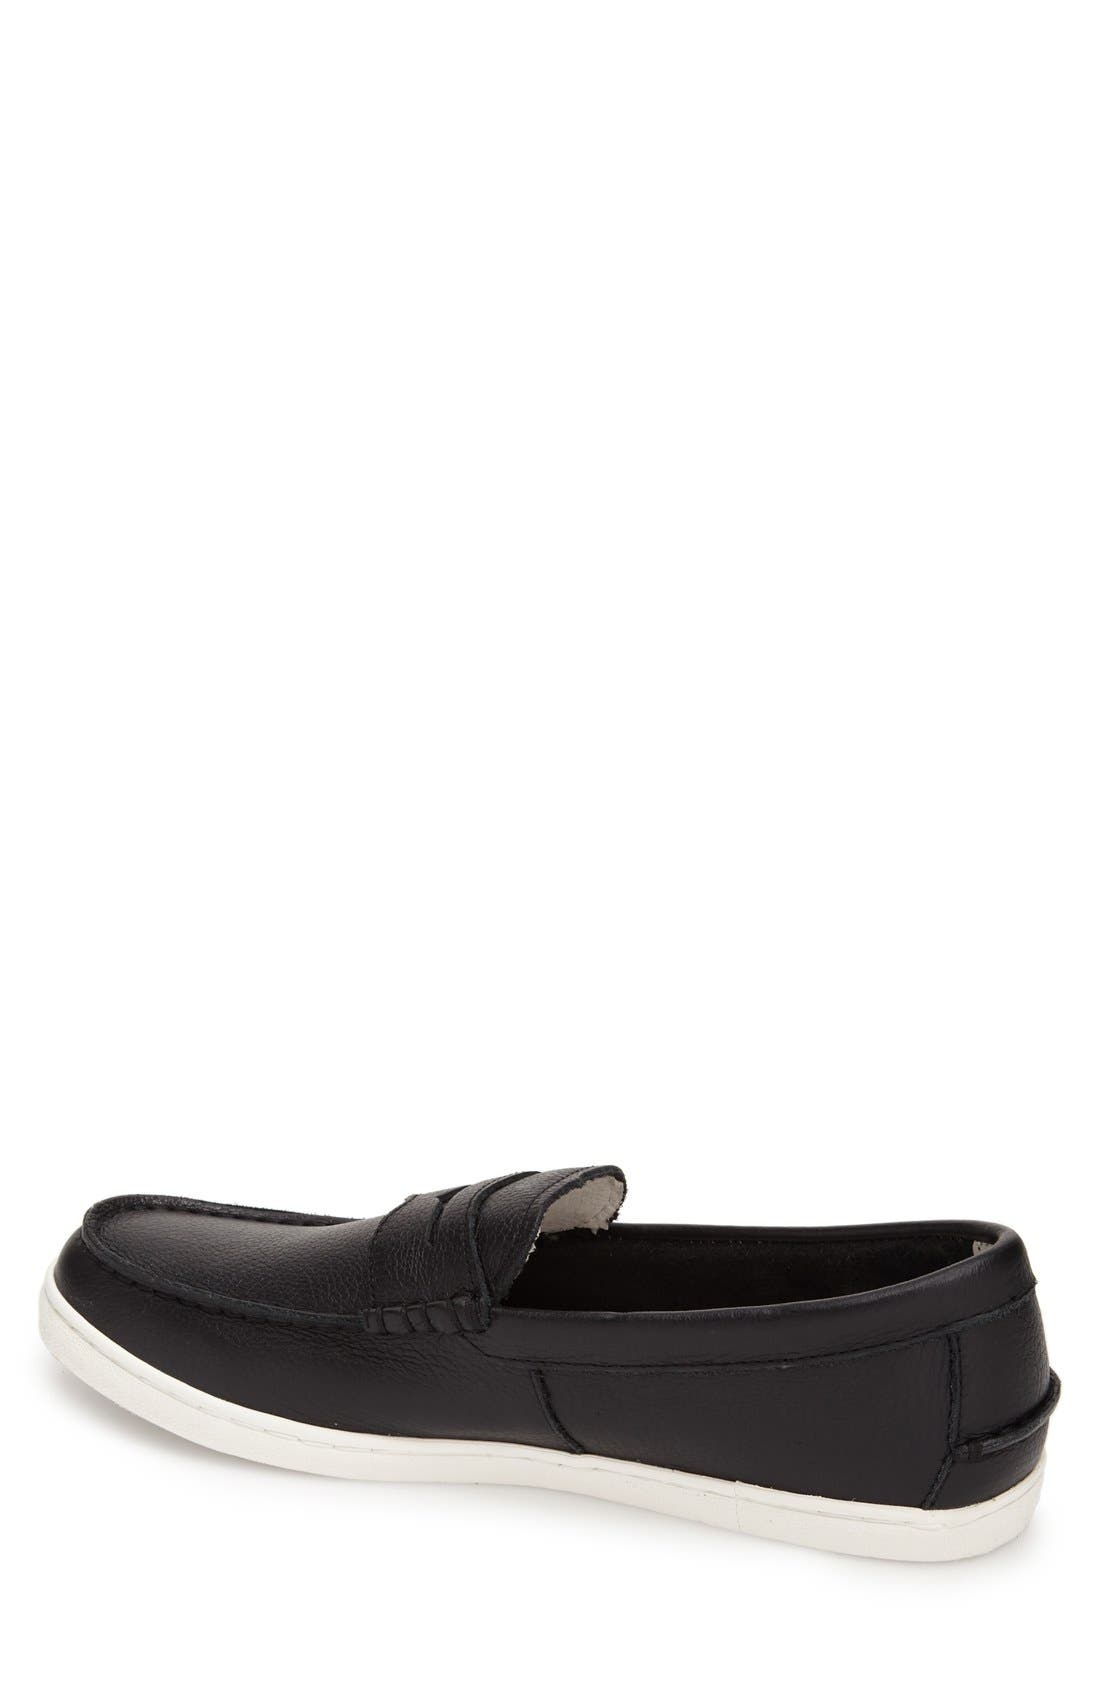 'Pinch' Penny Loafer,                             Alternate thumbnail 10, color,                             001